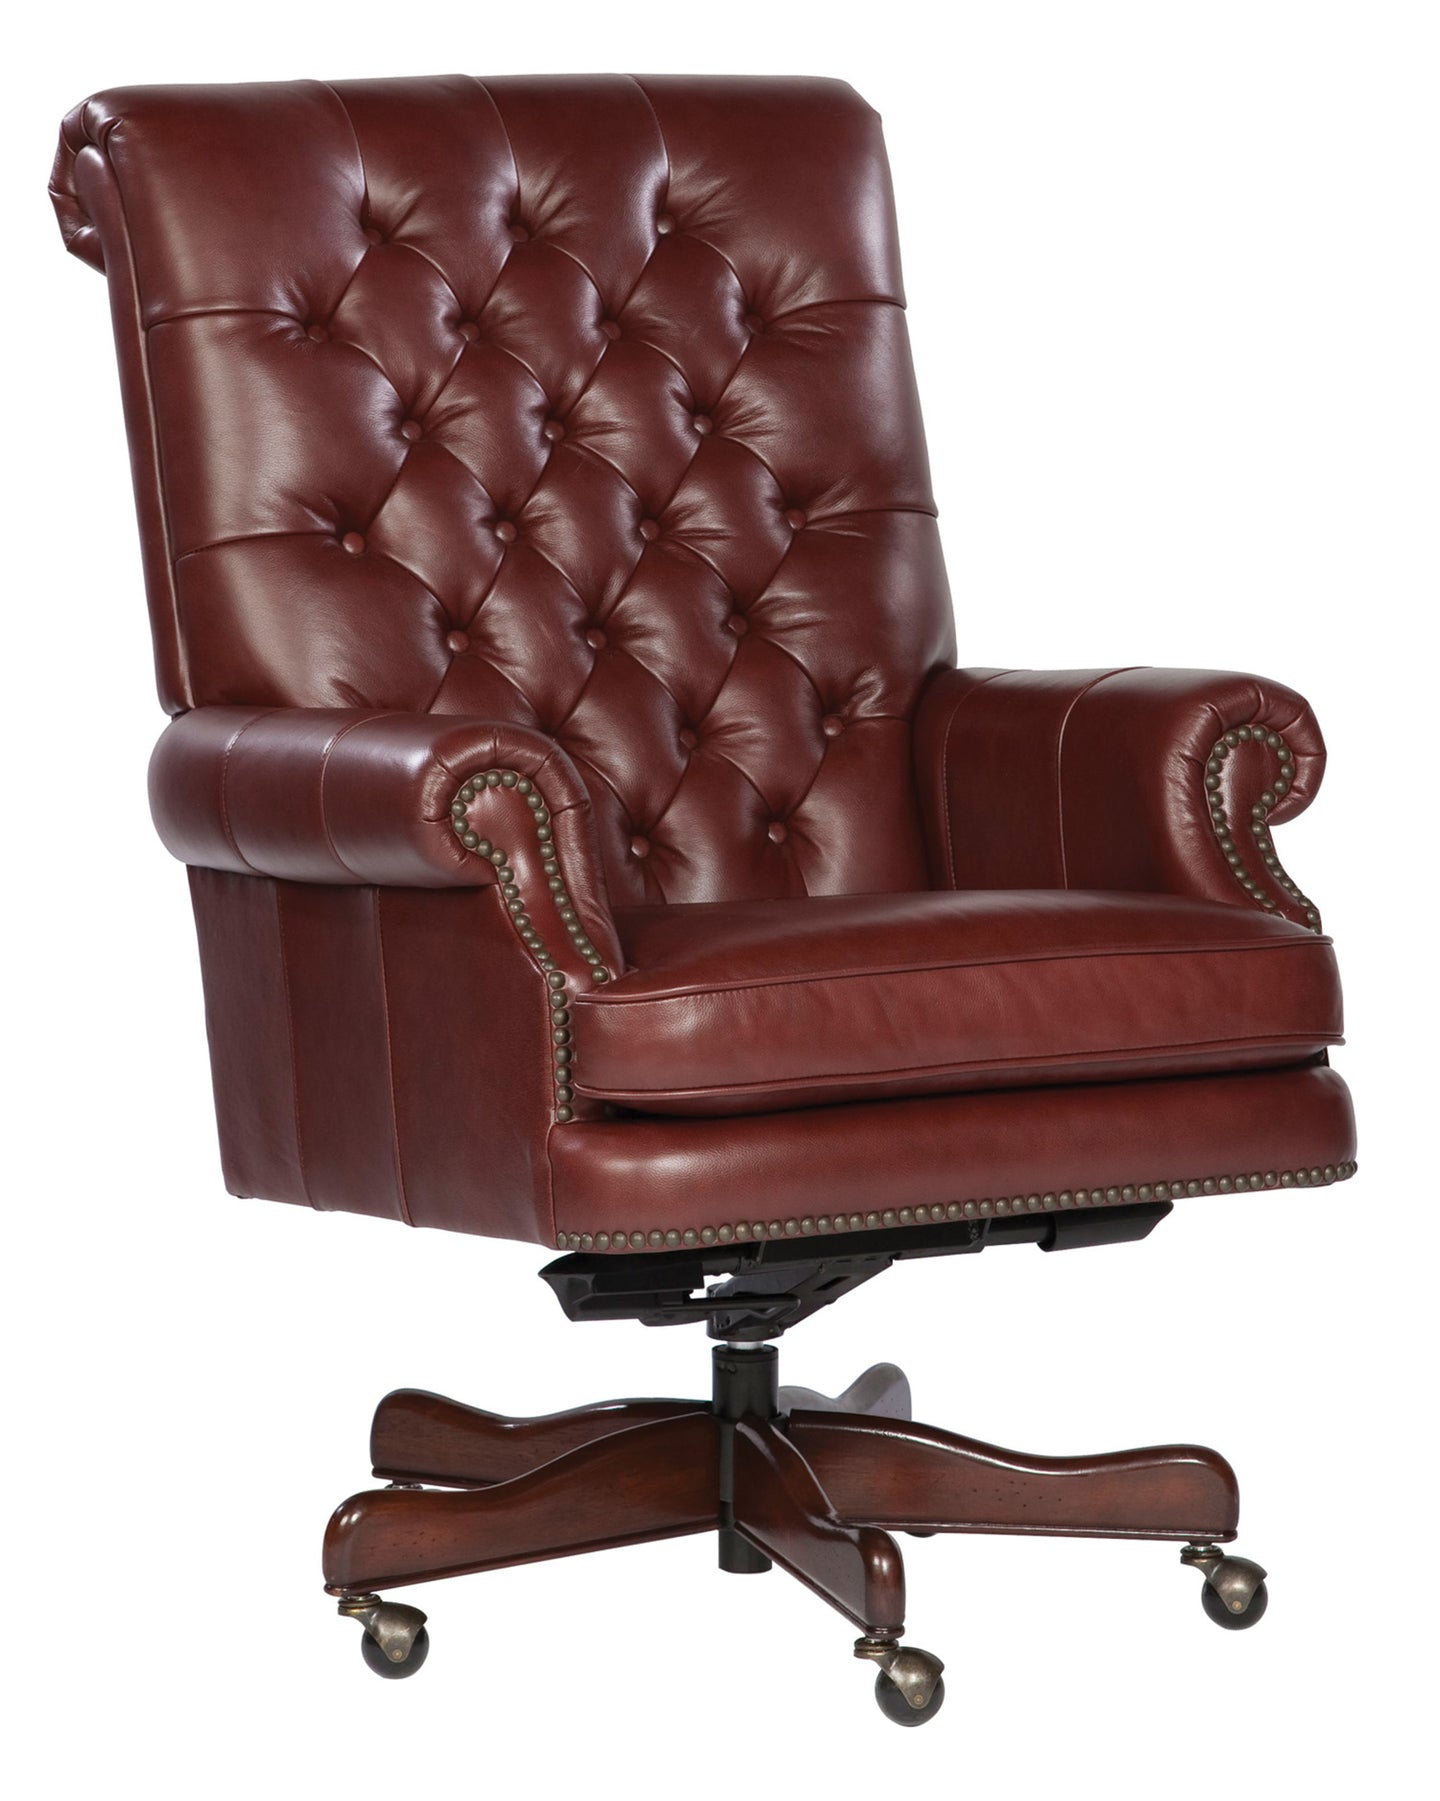 Hekman Tufted Merlot Leather Executive Office Chair 7-9253M - Curios And More